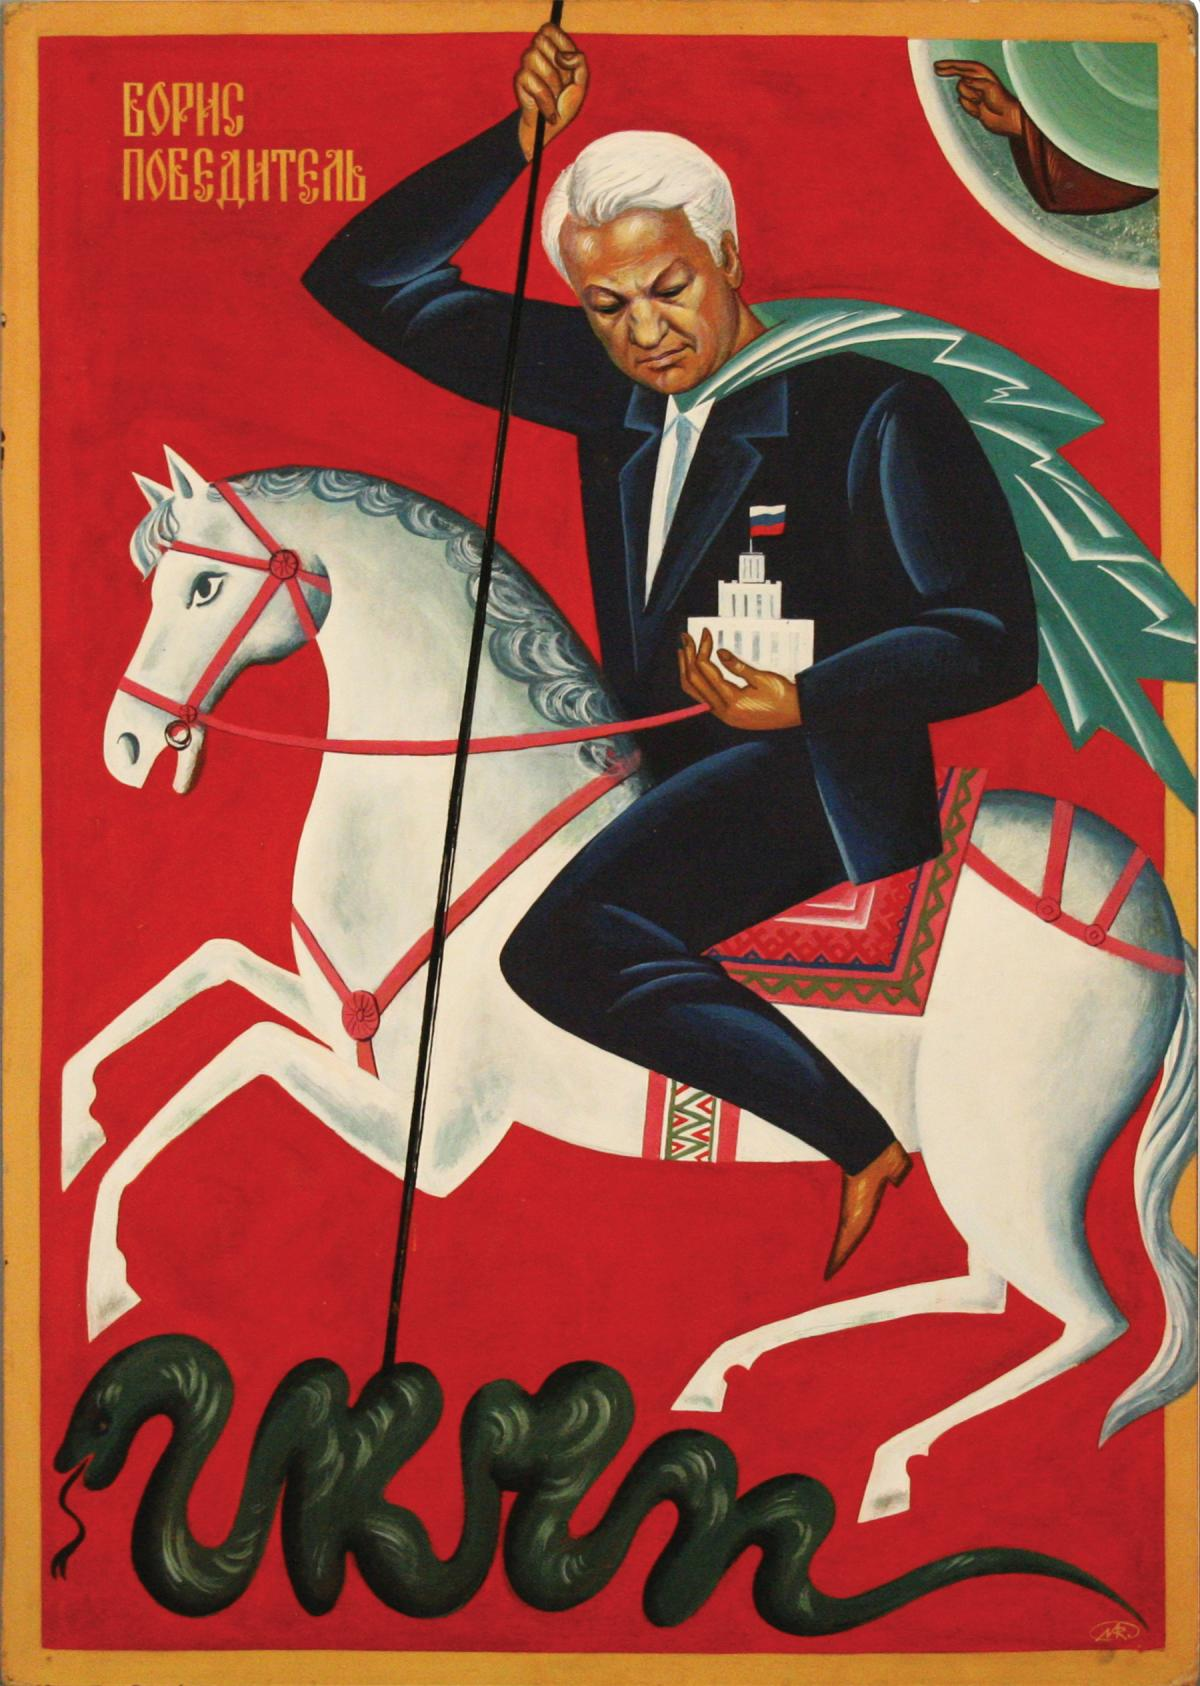 Boris Yeltsin in a dark suit and cape, depicted riding a white horse and stabbing a long green snake